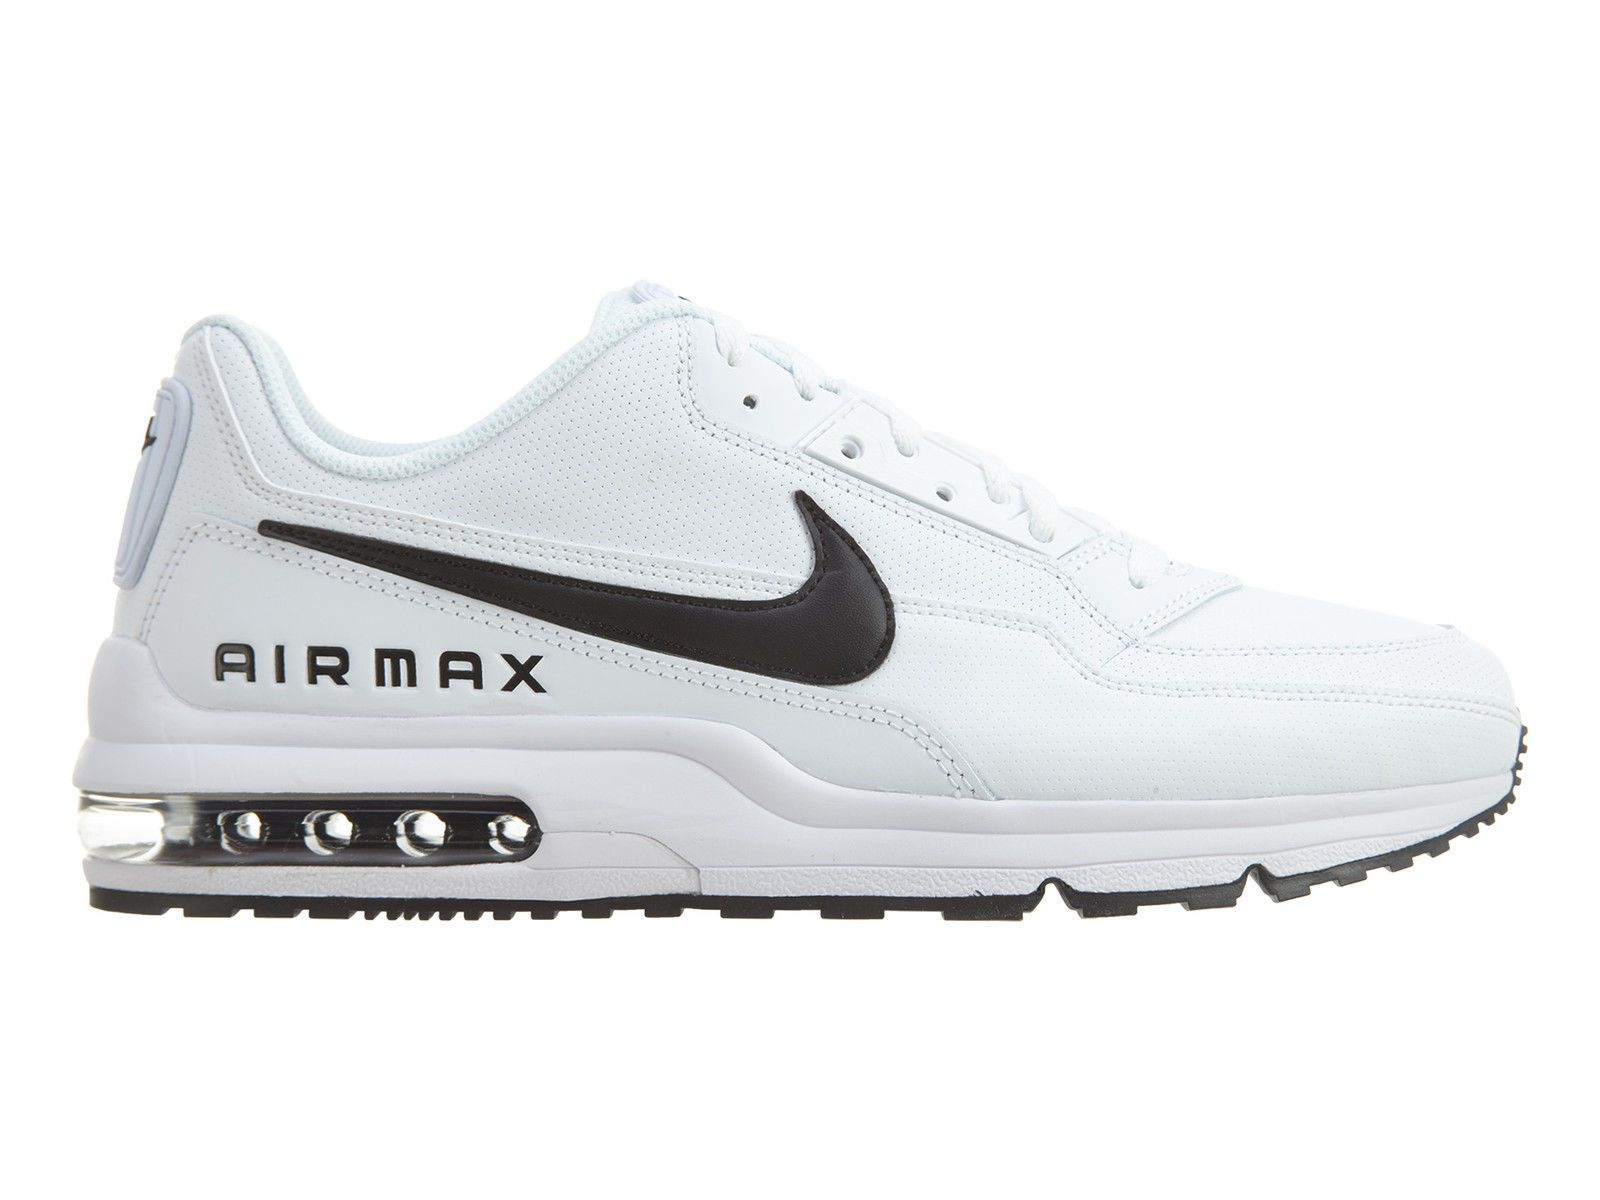 online store 034af 28fb2 Nike Air Max LTD 3 Mens 687977-107 White Black Leather Running Shoes Size 10